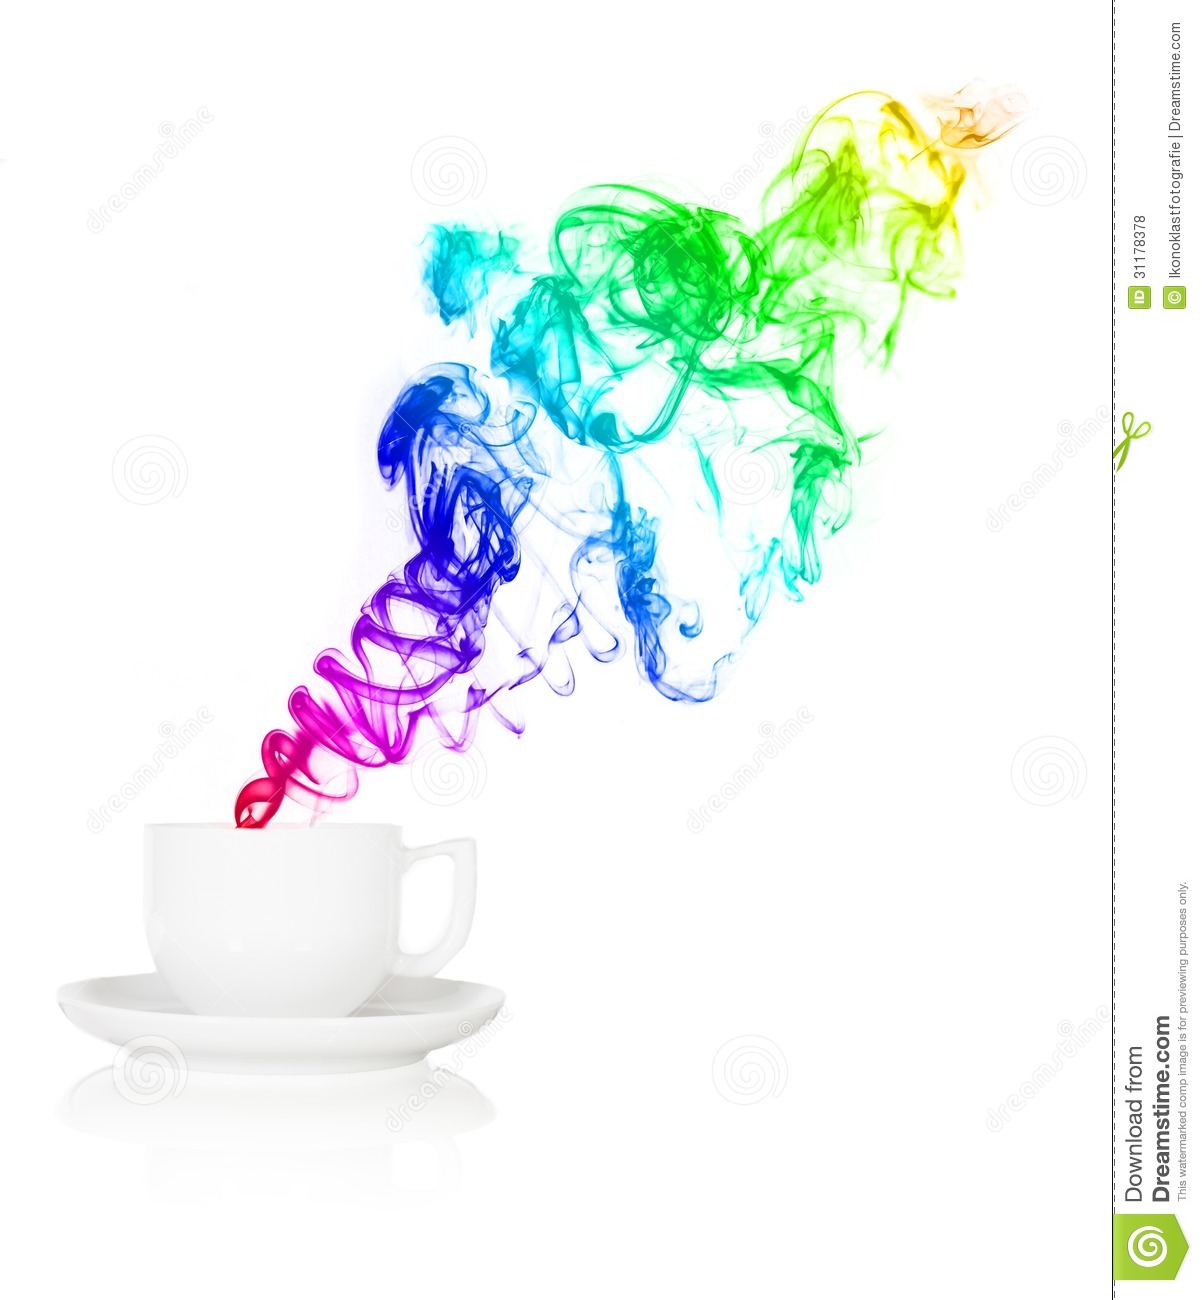 Teacup With Colorful Smoke In Front Of White Background Royalty Free